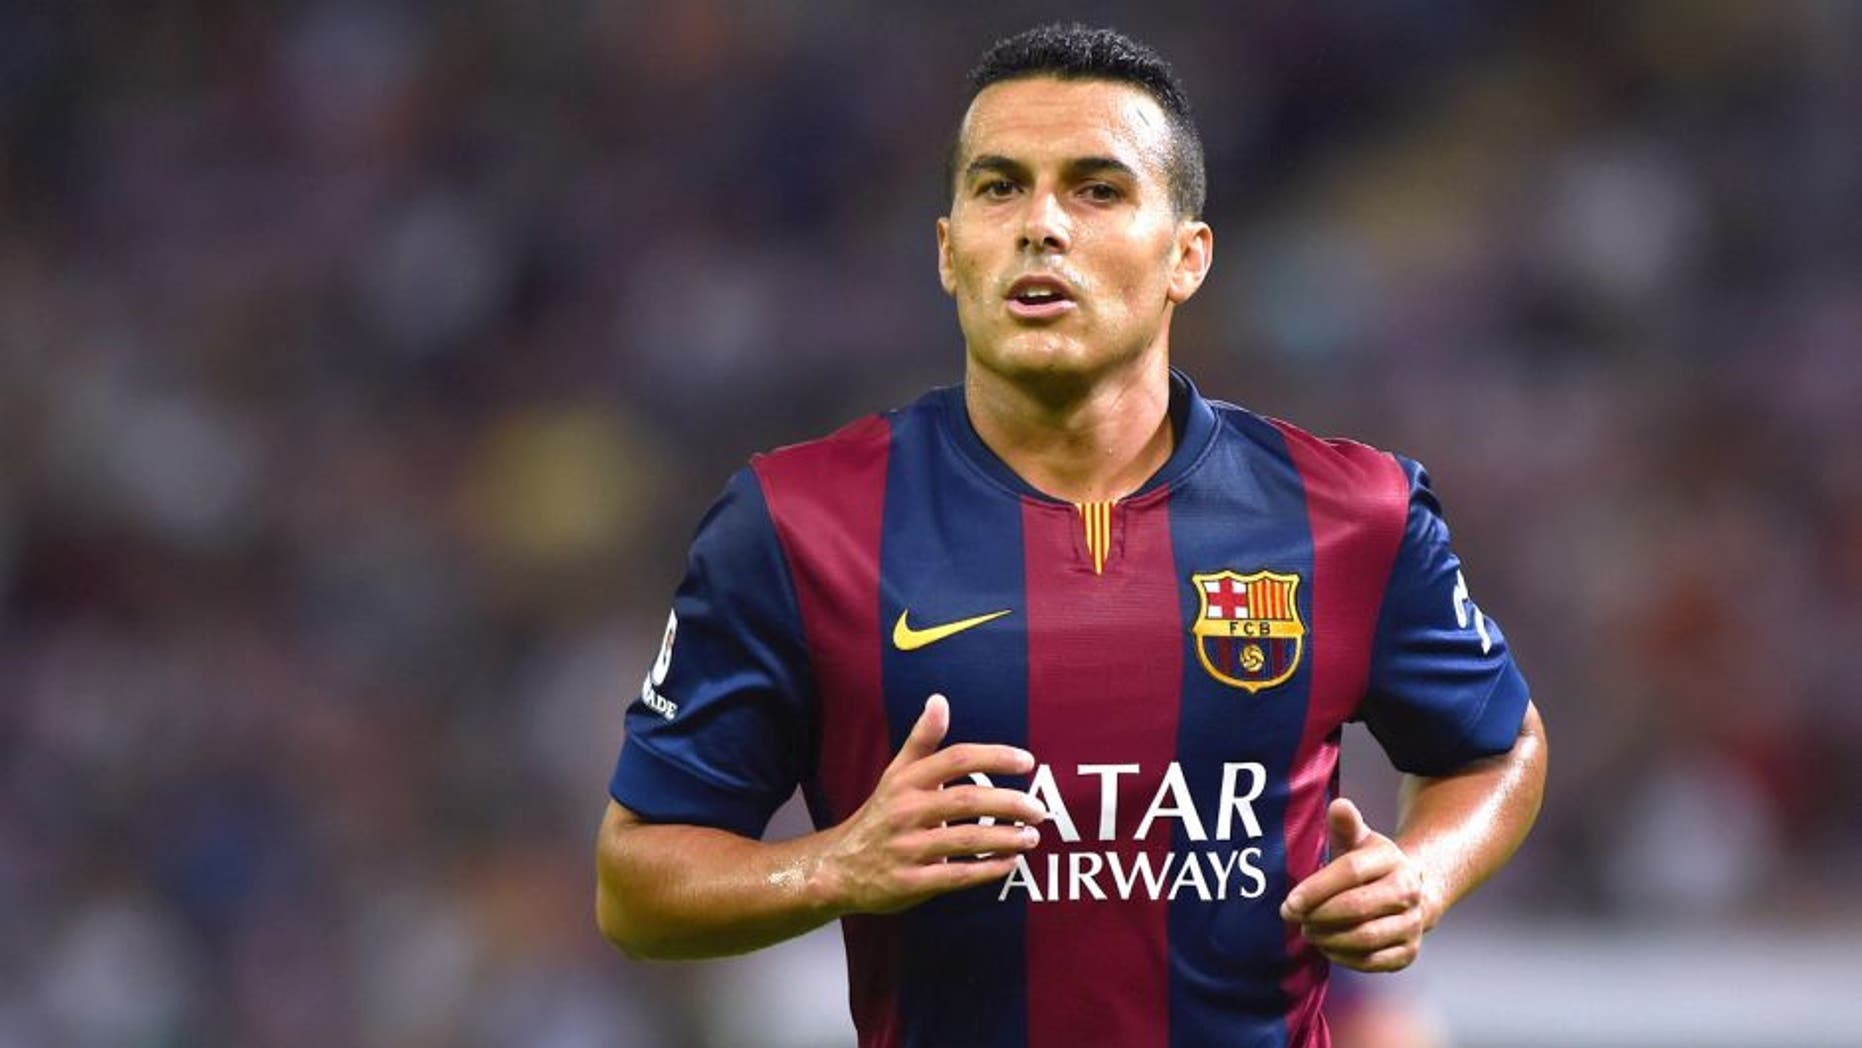 GENEVA, SWITZERLAND - AUGUST 06: Pedro Rodriguez of FC Barcelona looks on during the pre-season friendly match between FC Barcelona and SSC Napoli on August 6, 2014 in Geneva, Switzerland. (Photo by Valerio Pennicino/Getty Images)